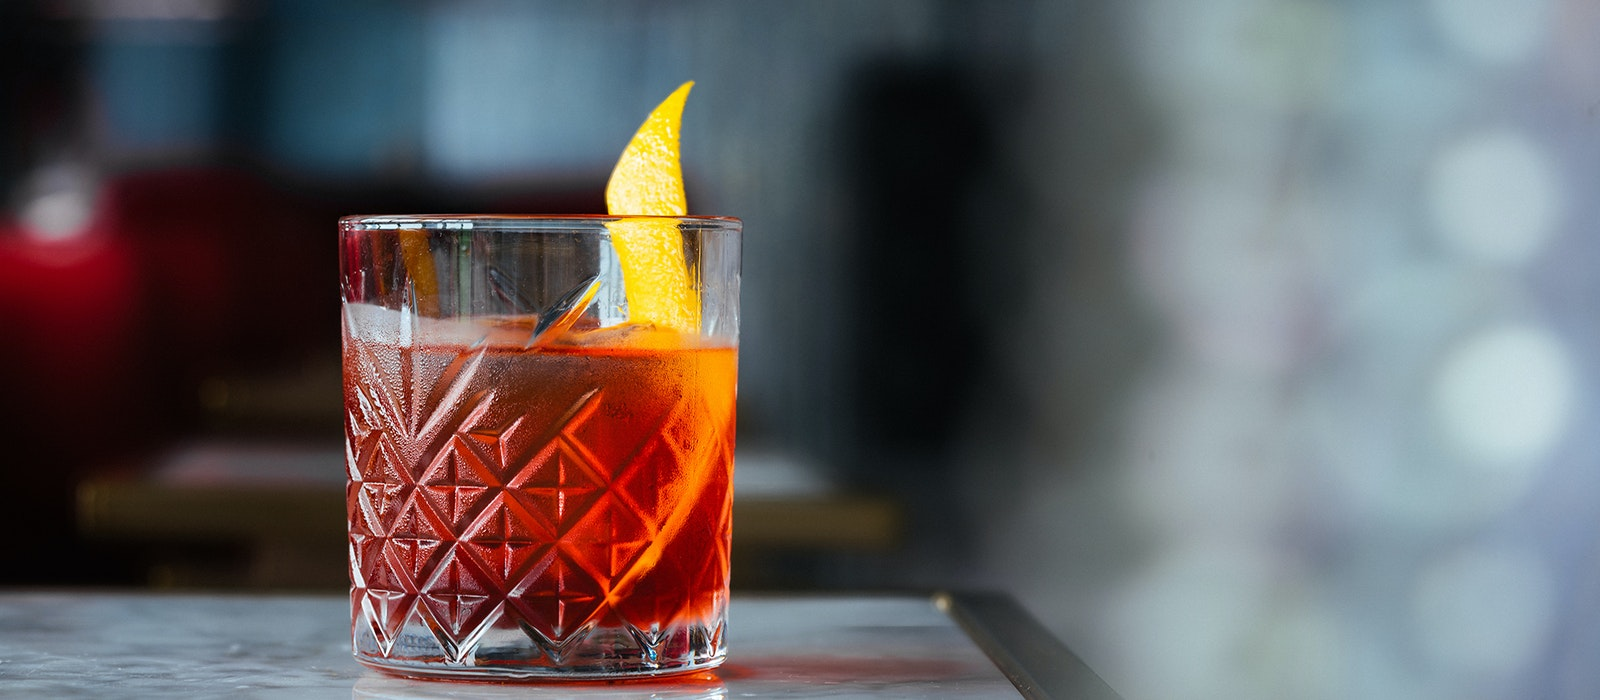 A classic Negroni at New York's Dear Irving on Hudson bar